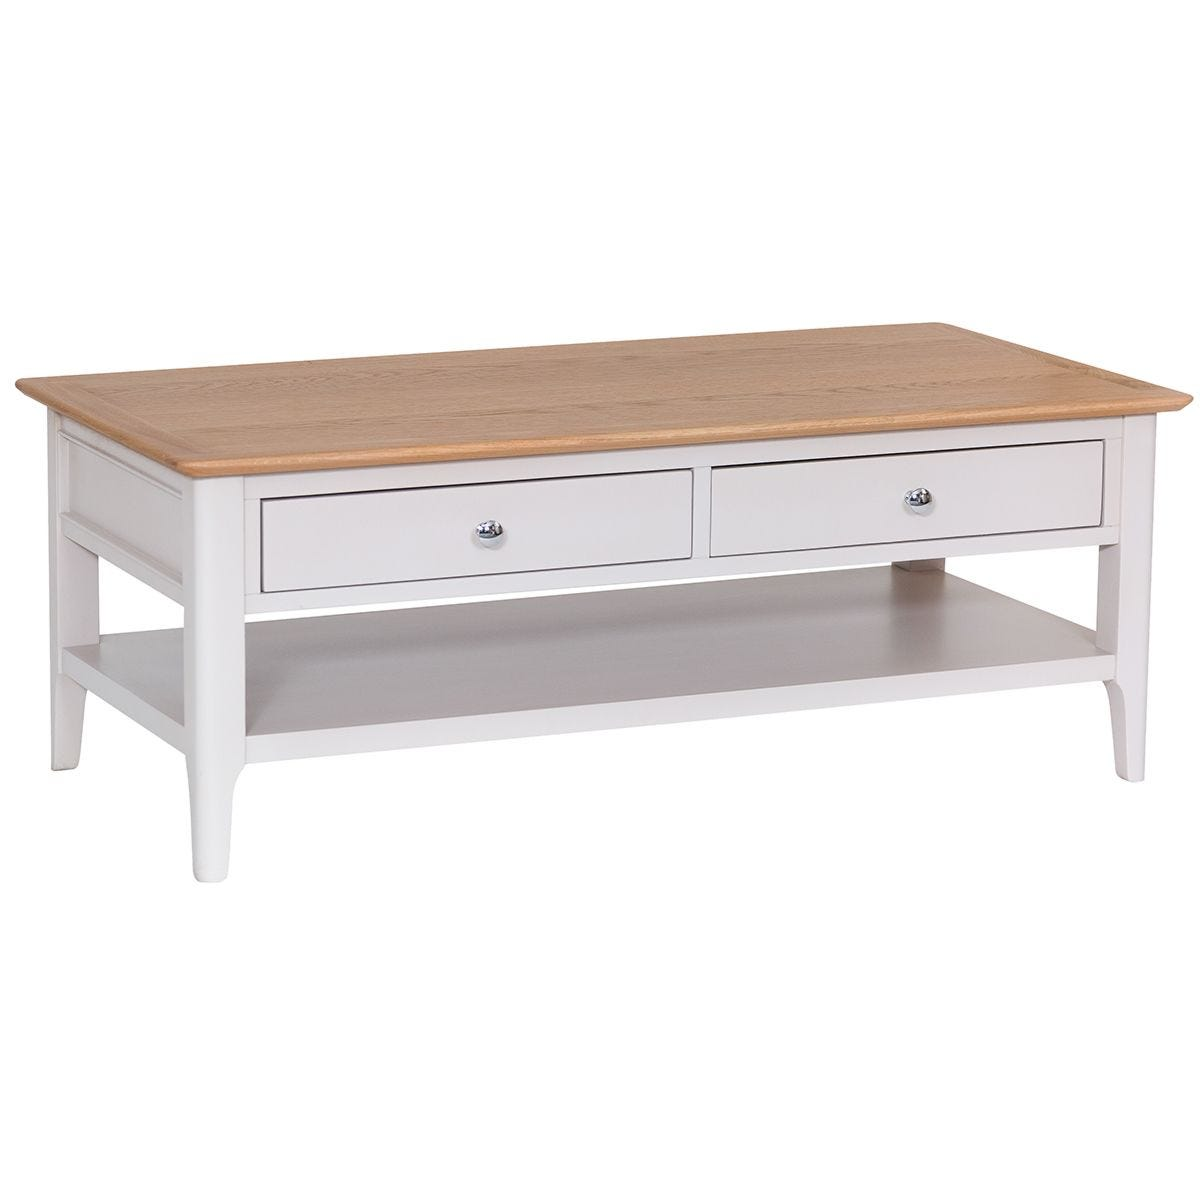 Notswood Large Coffee Table